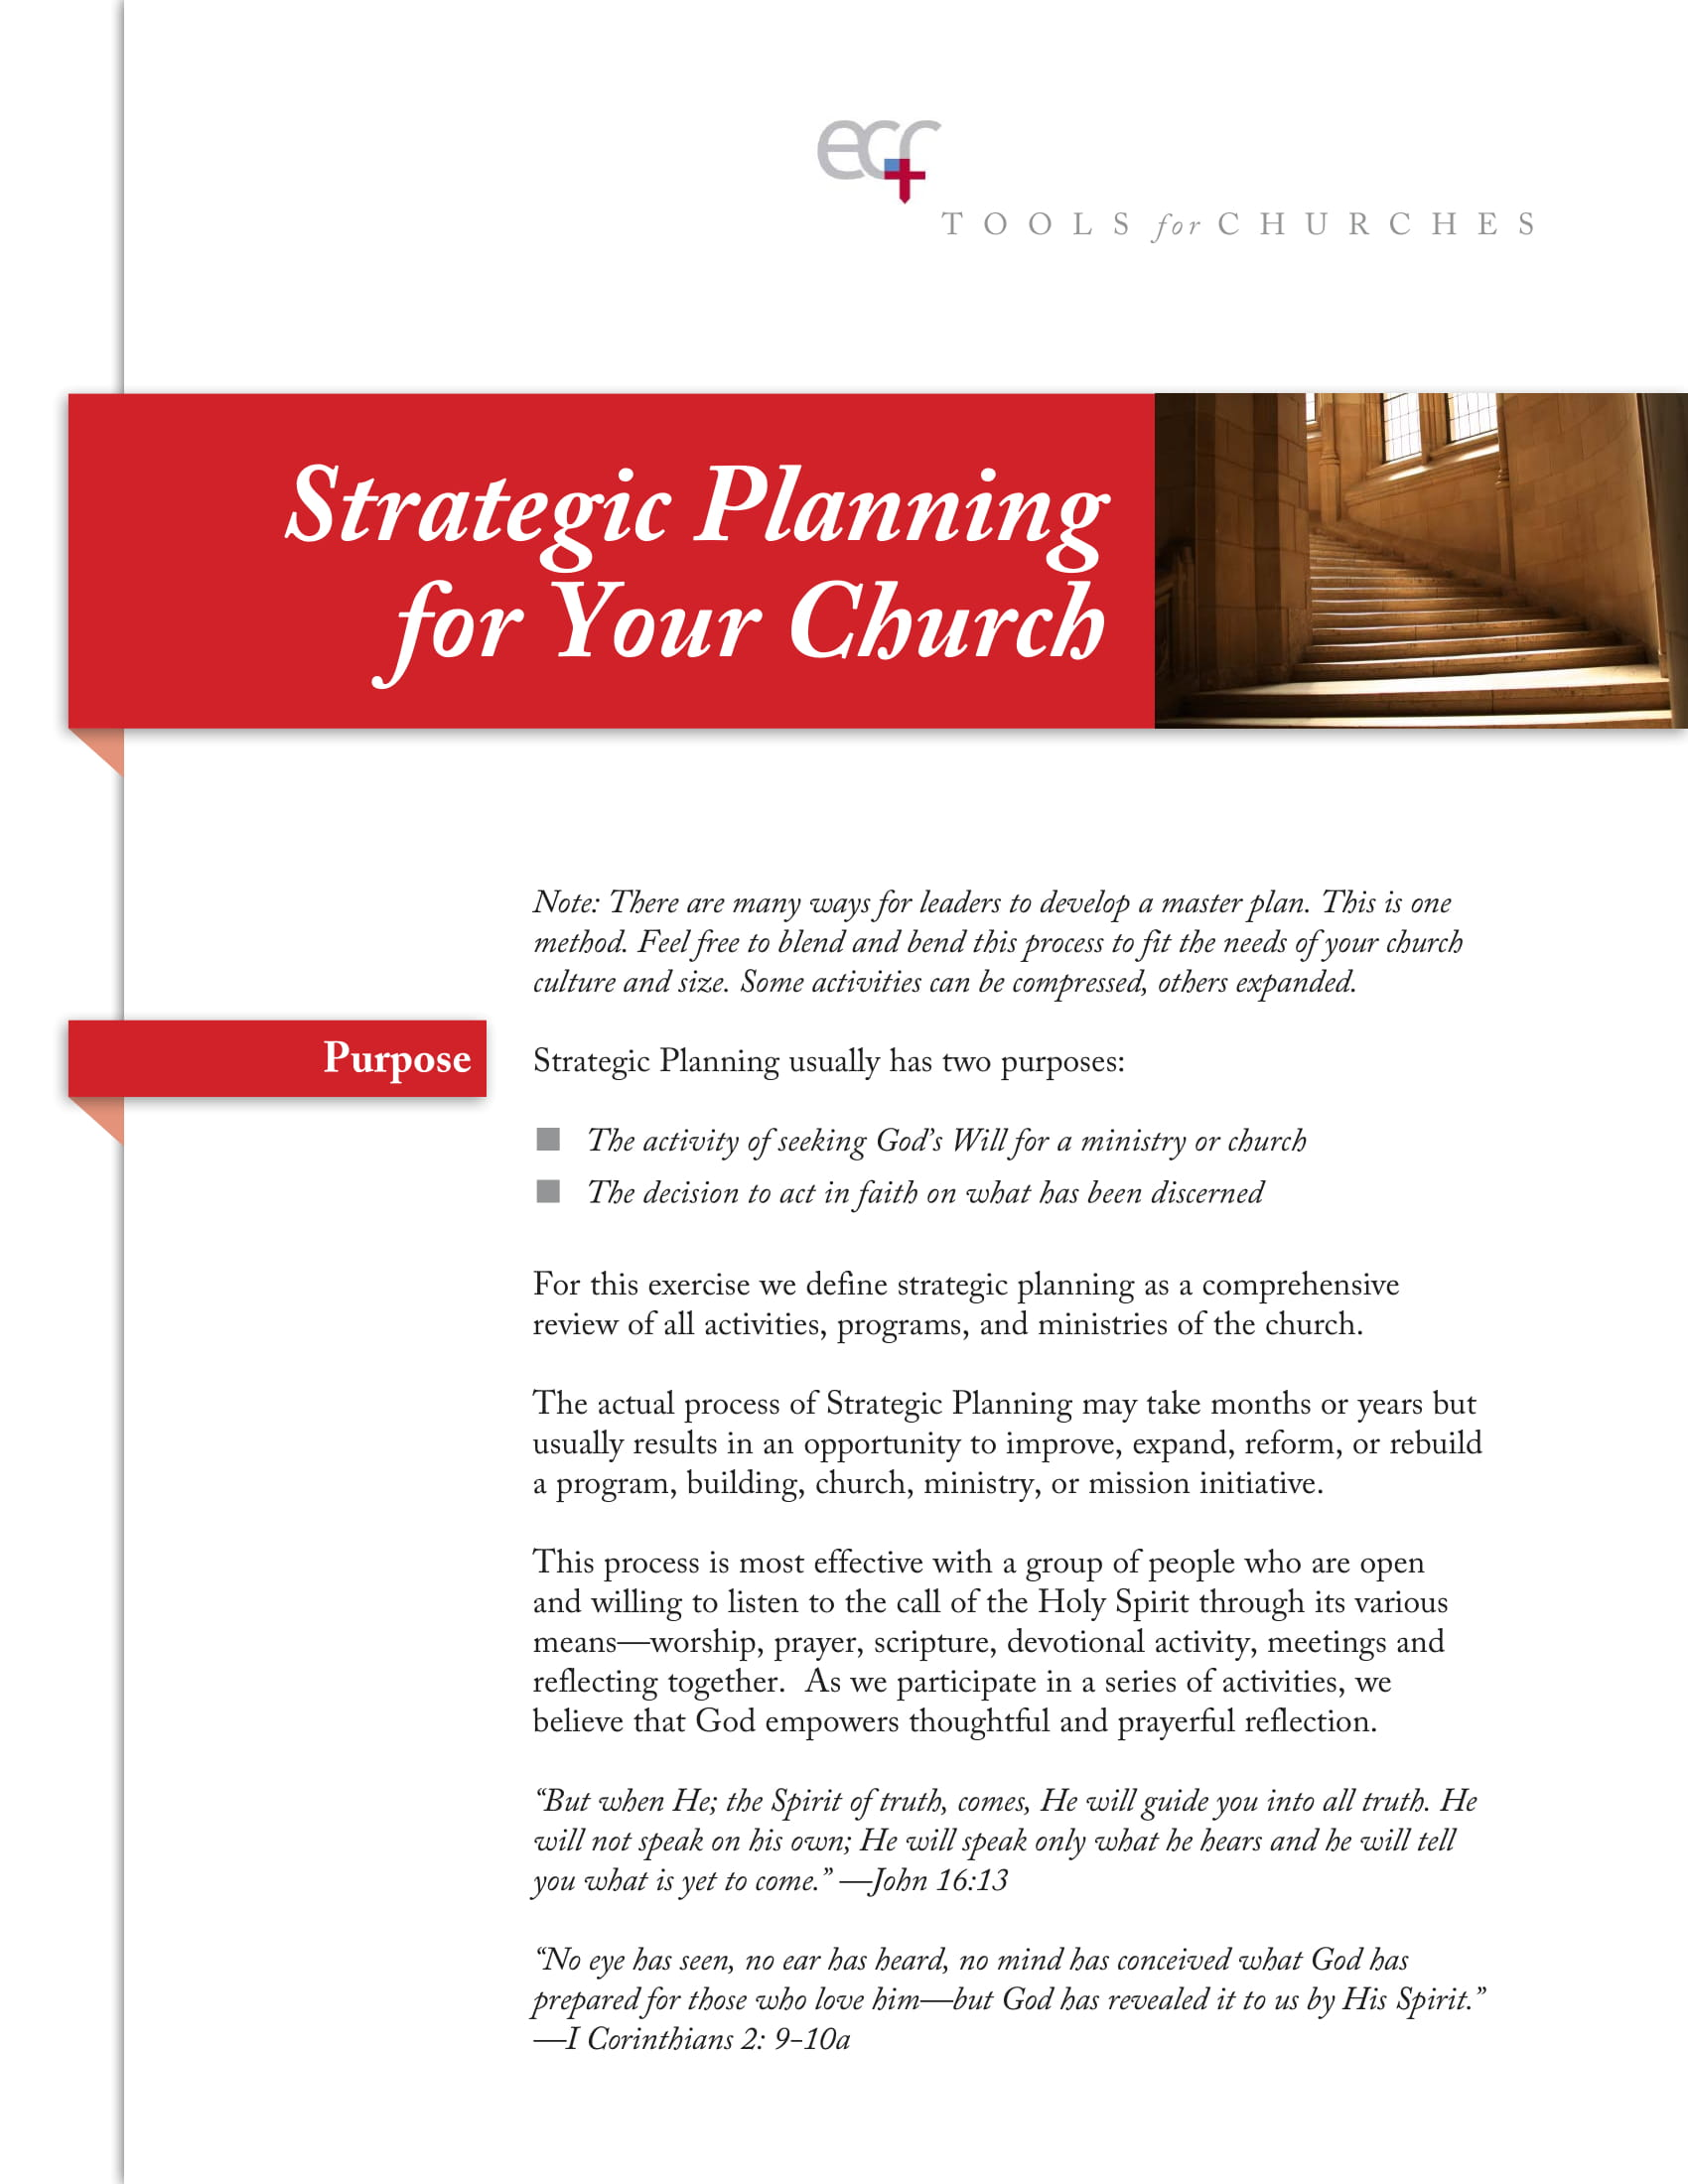 strategic planning for your church example 1